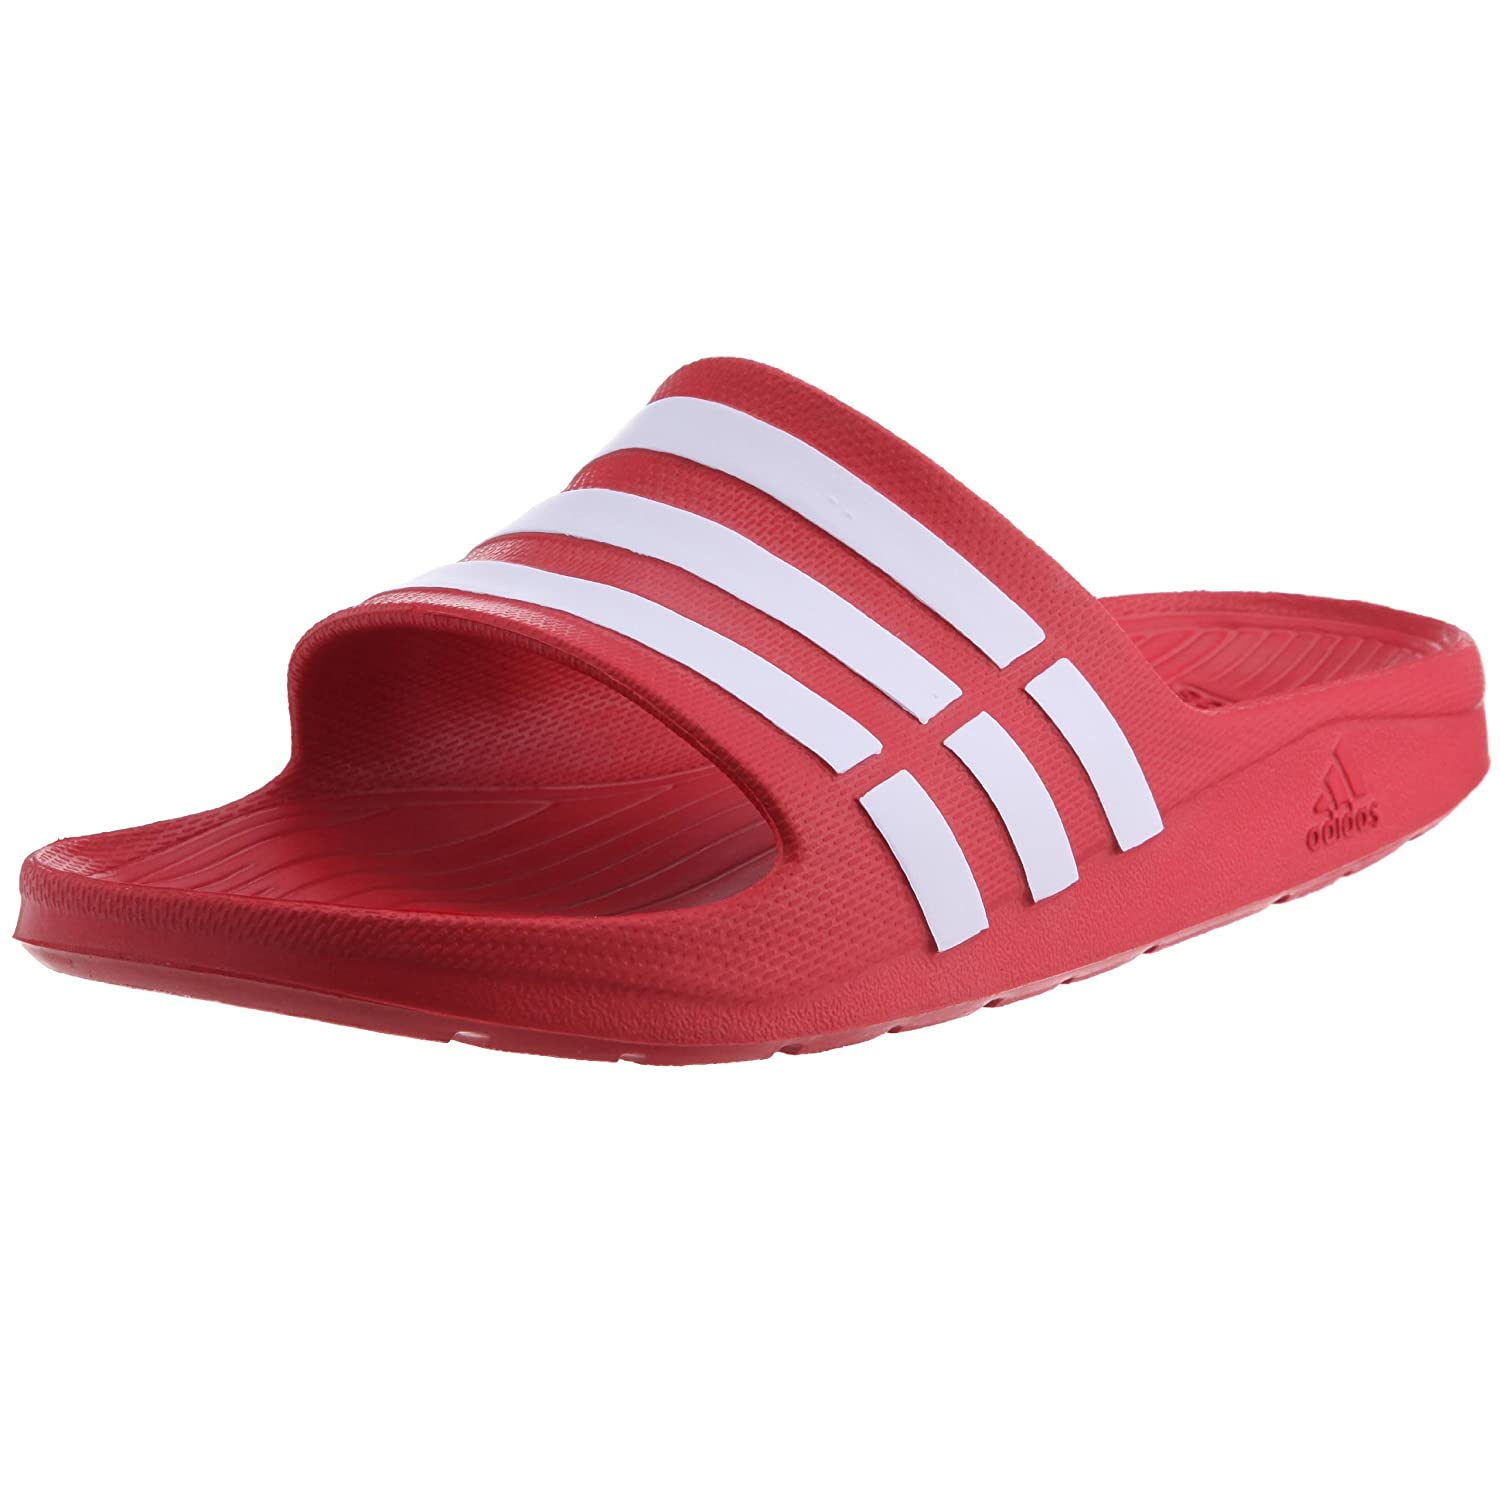 adidas Duramo Slide - Mules Slide natation - Mixte Adulte Adulte Mixte Rouge (Collegiate Red/ White/ Collegiate Red) a9eb063 - reprogrammed.space